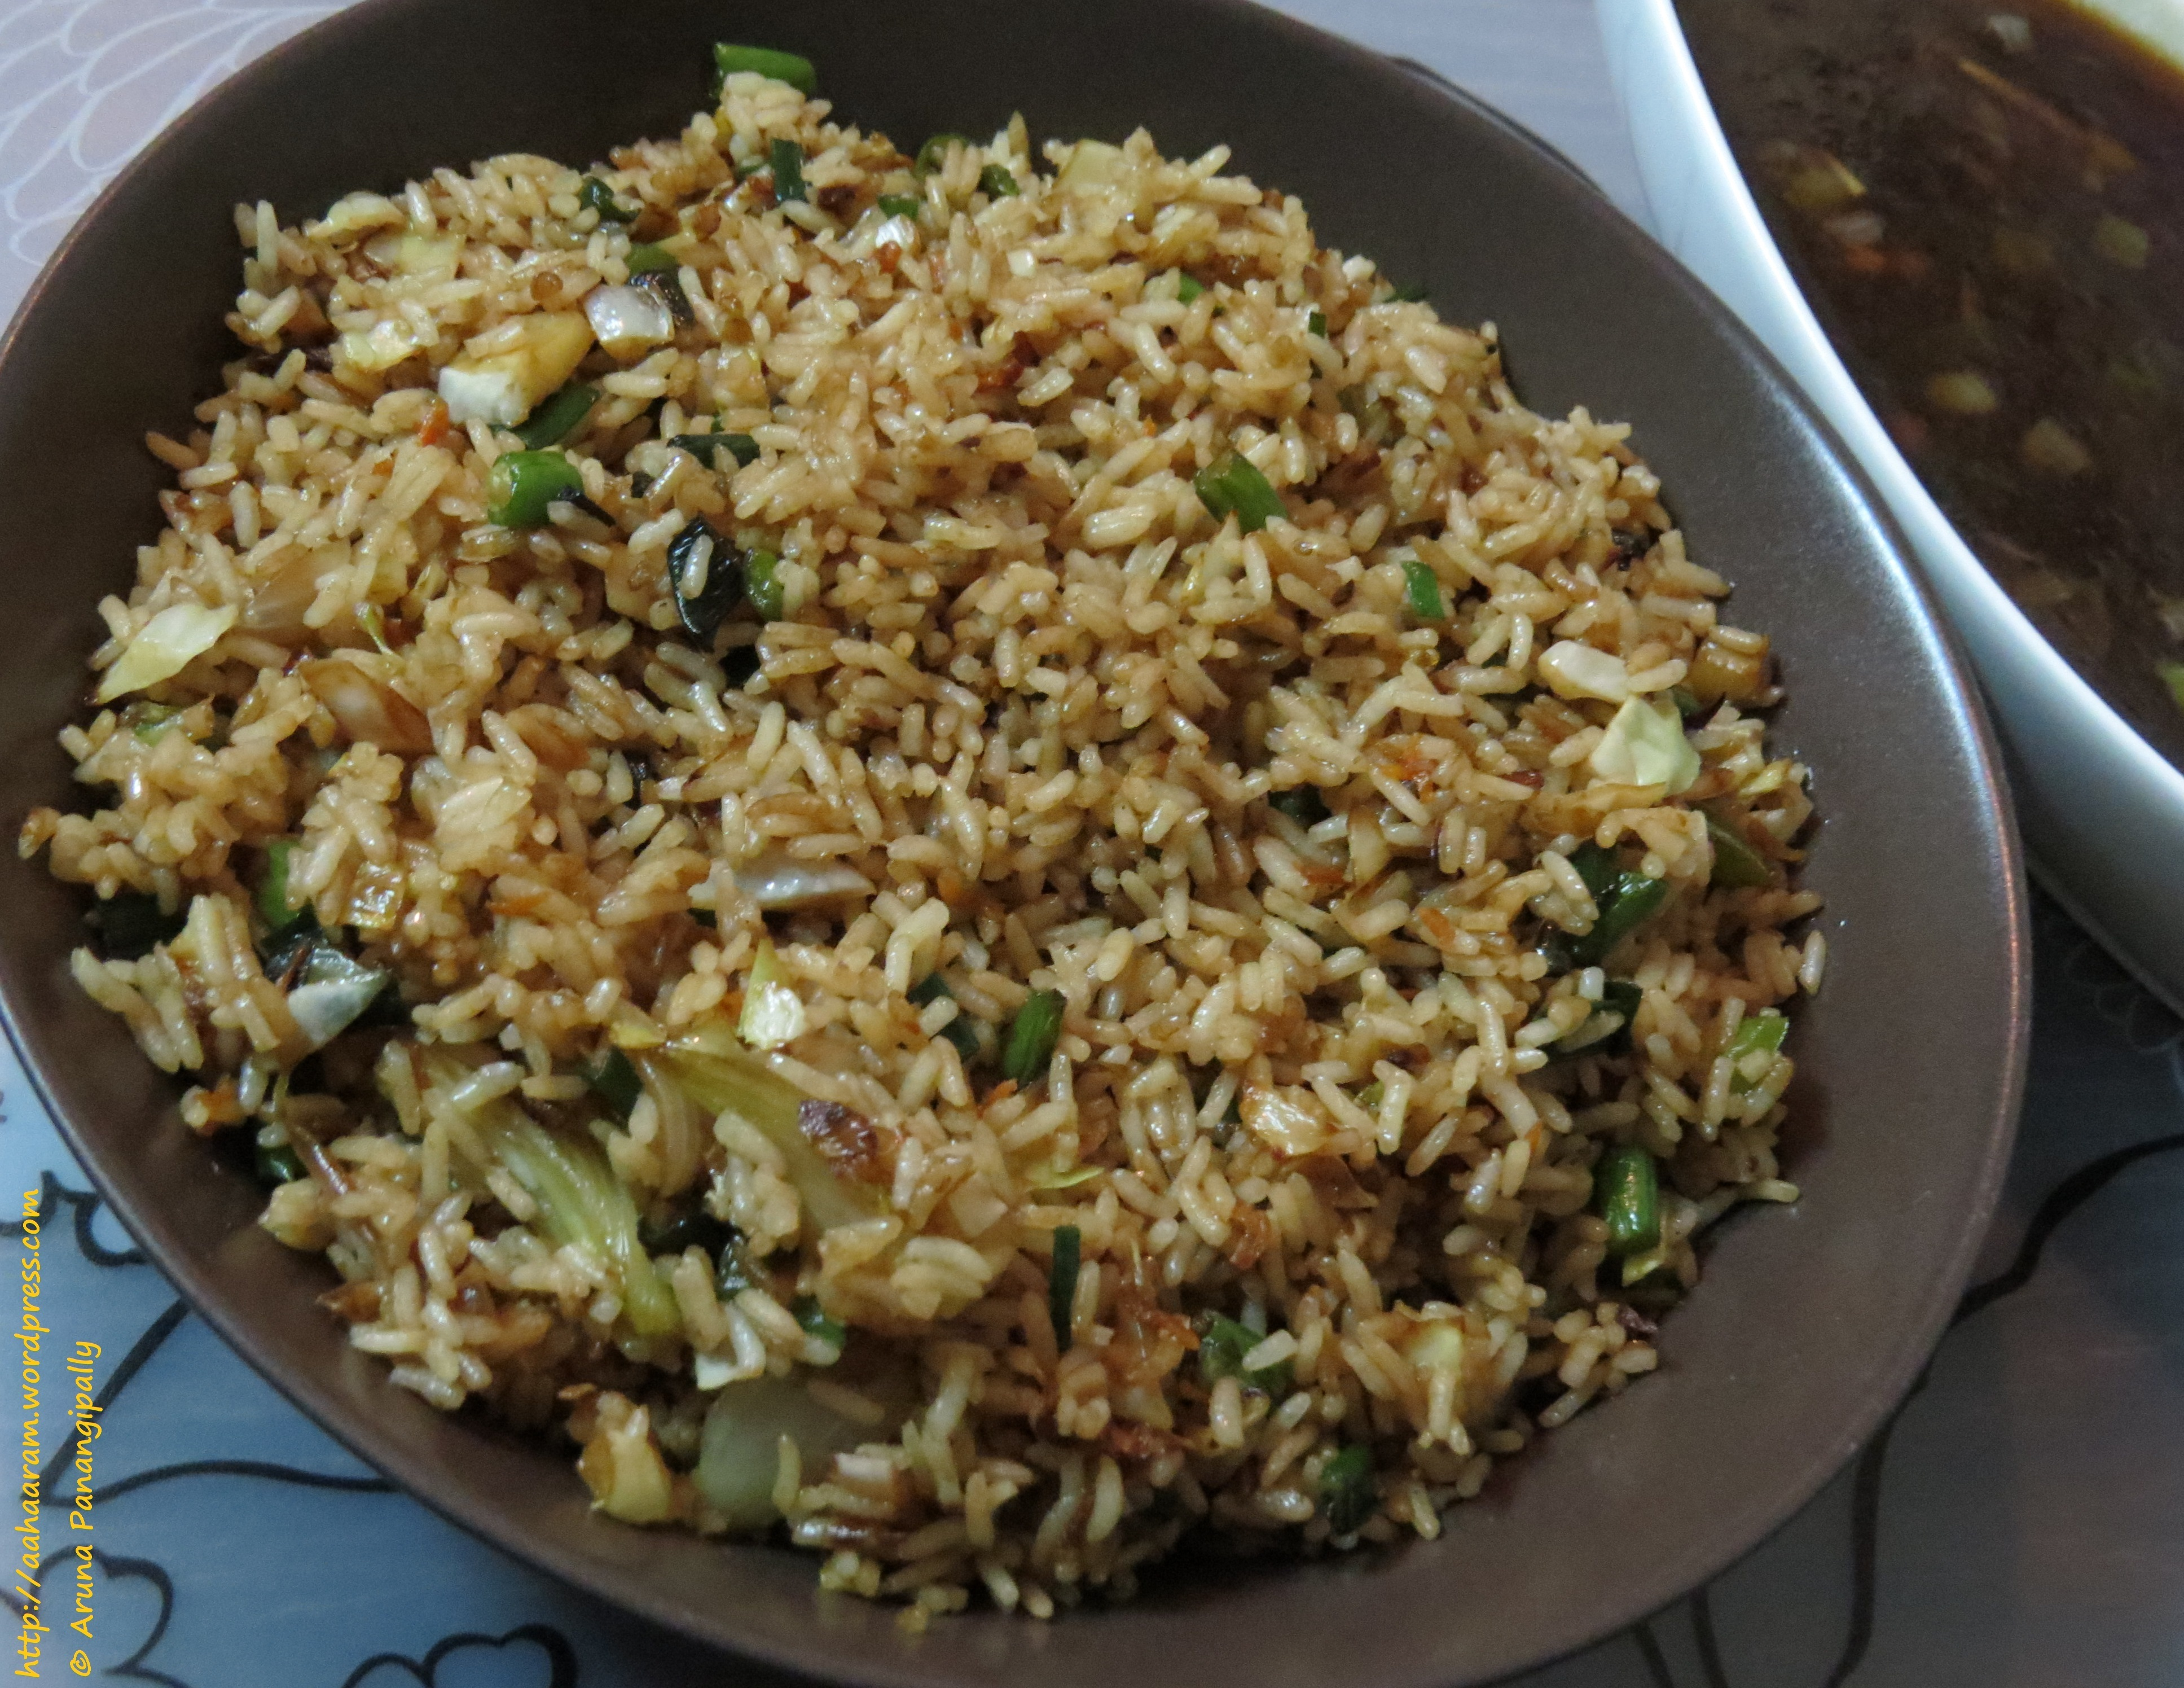 Vegetarian Chinese Fried Rice or Vegetable Fried Rice